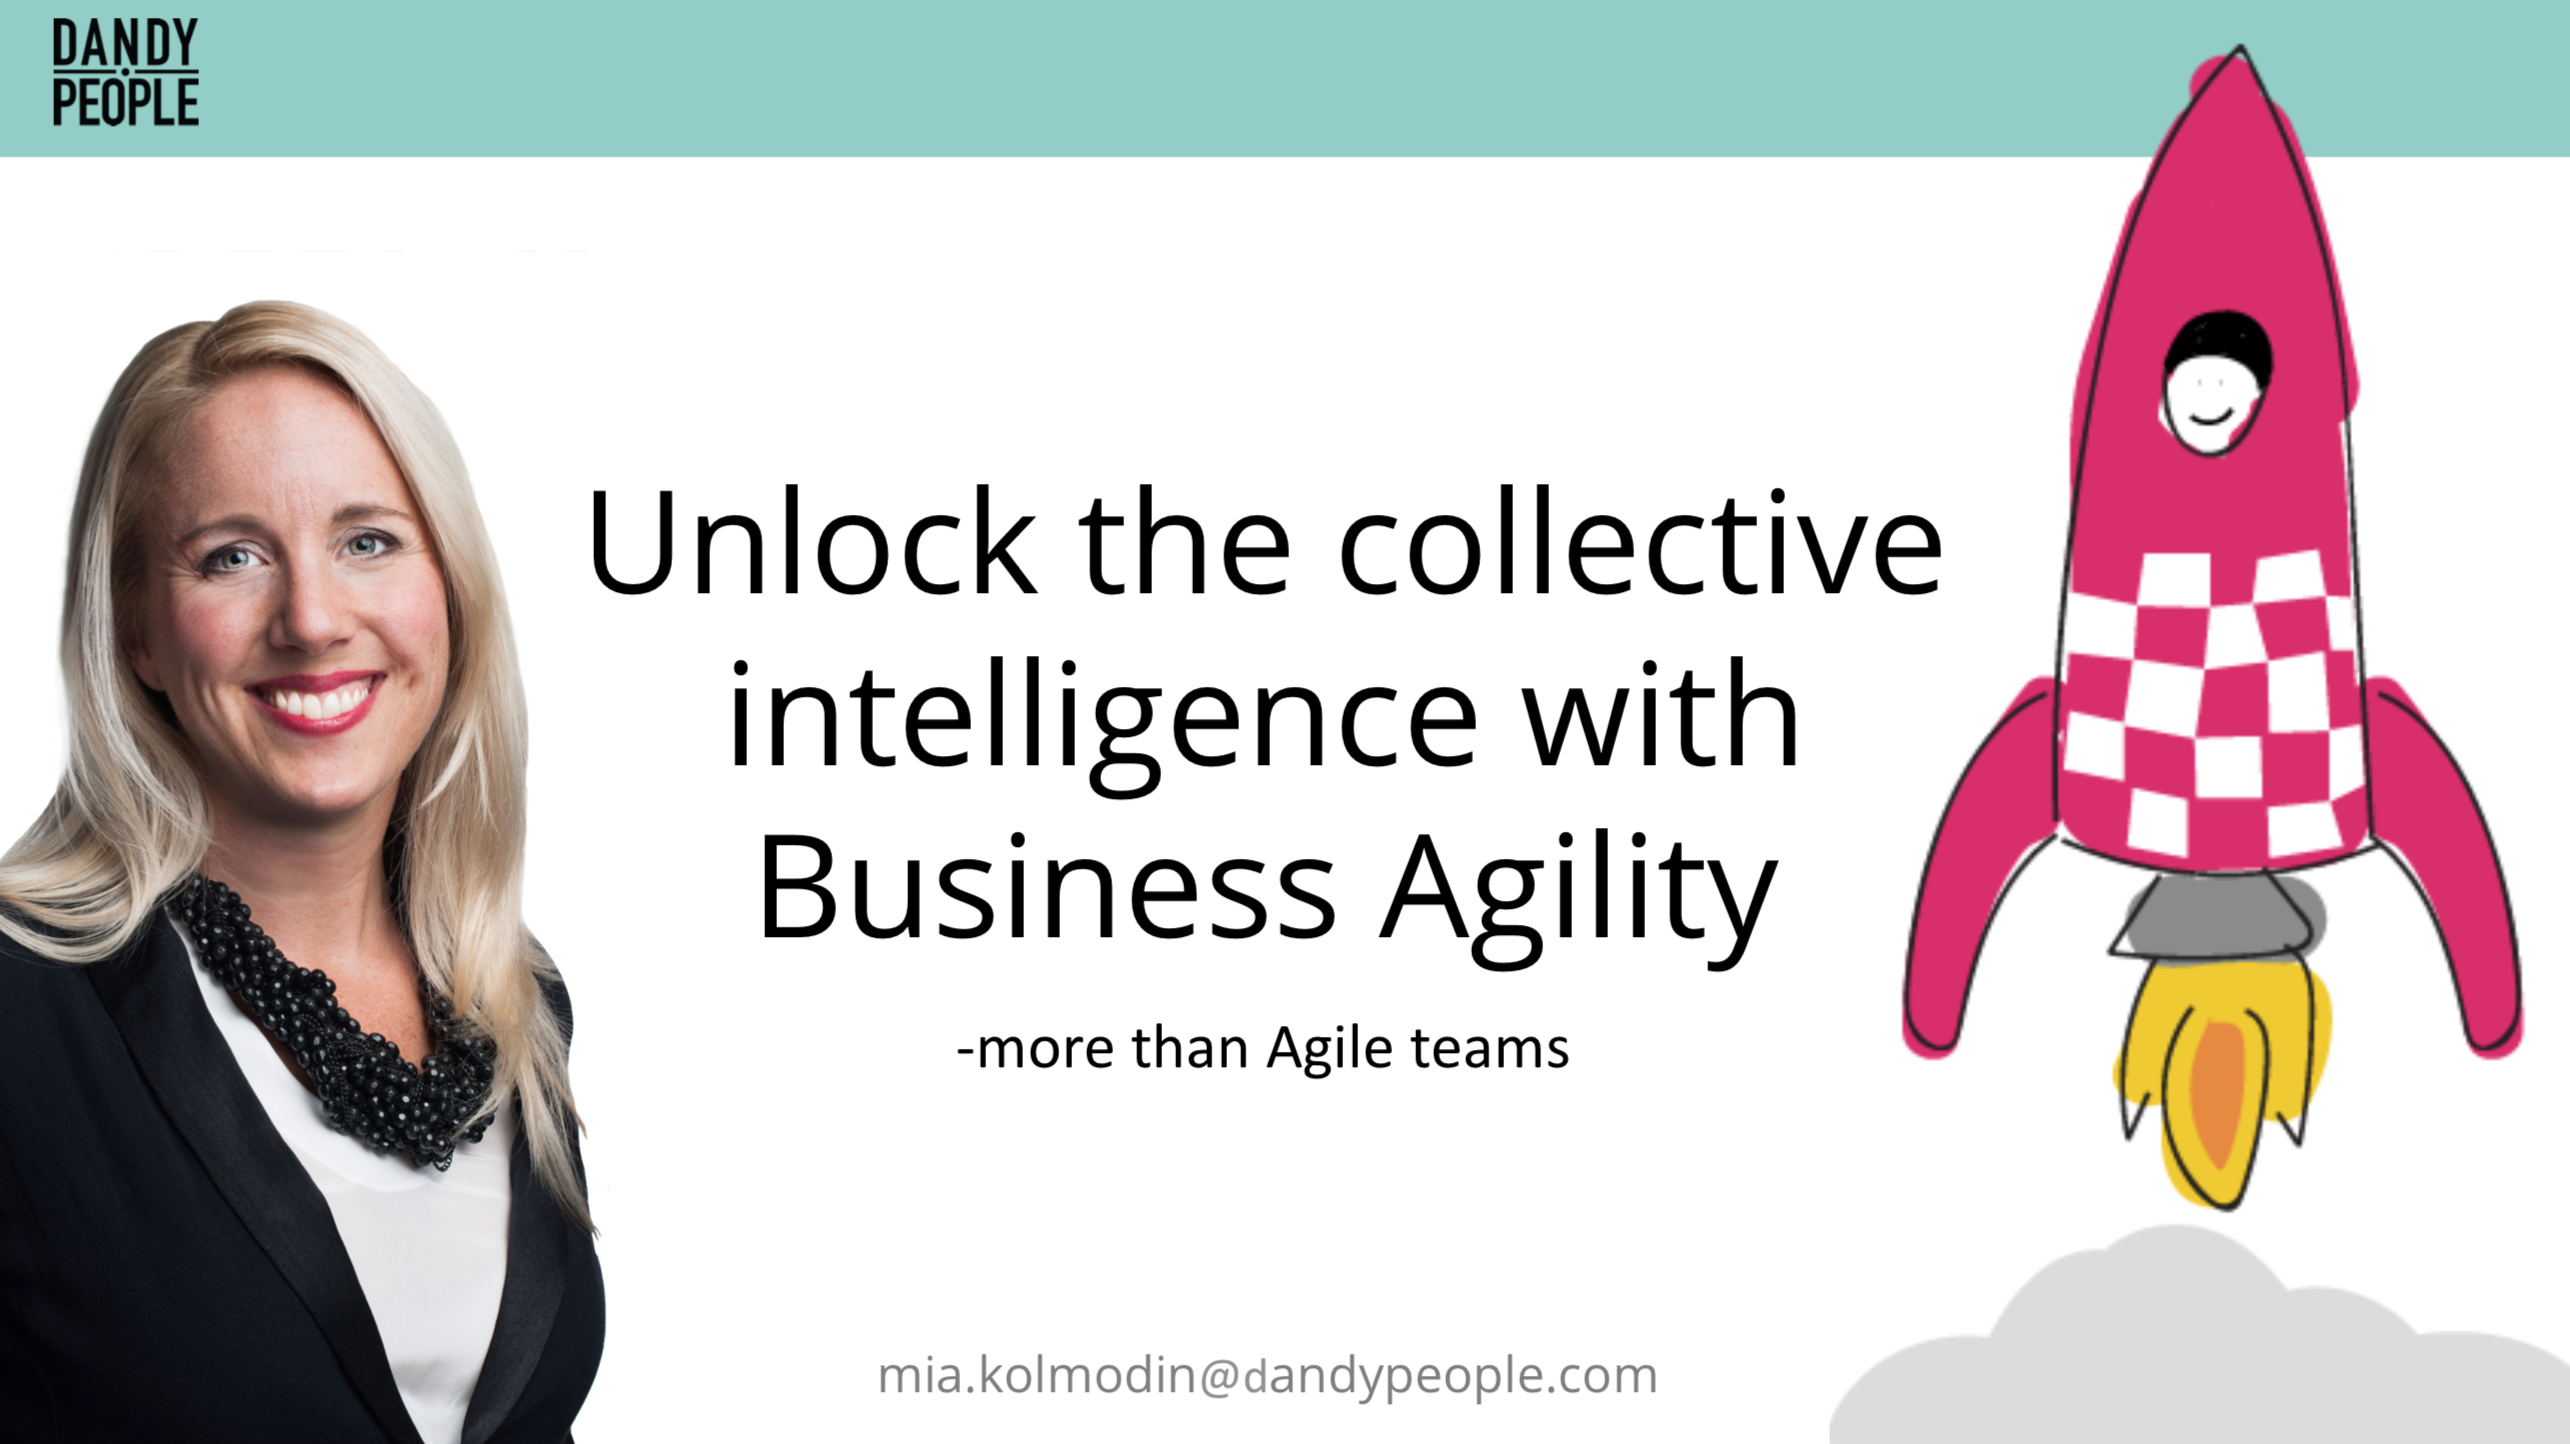 Unlock the collective intelligence with Business Agility - More than Agile Teams